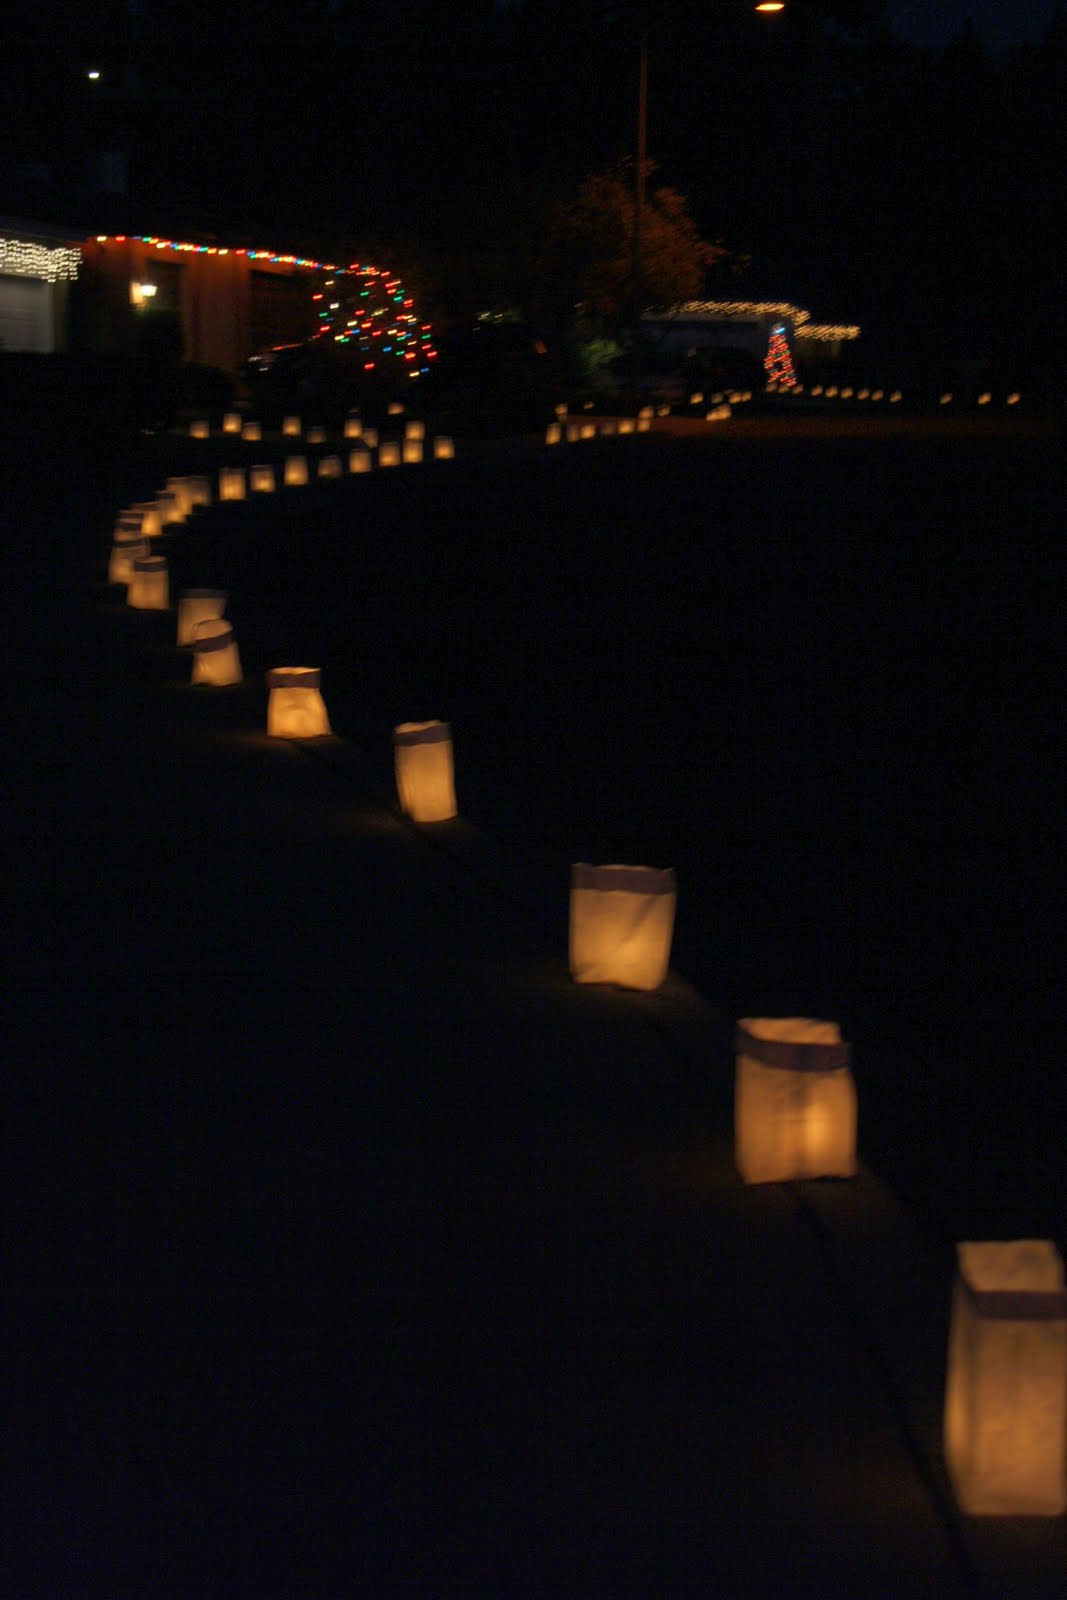 Out Of Plastic Gallon Jugs Or Small White Bags With Candles In Them I Must Say It Was Quite Pretty A Little Village Xmas Lights And Luminaries